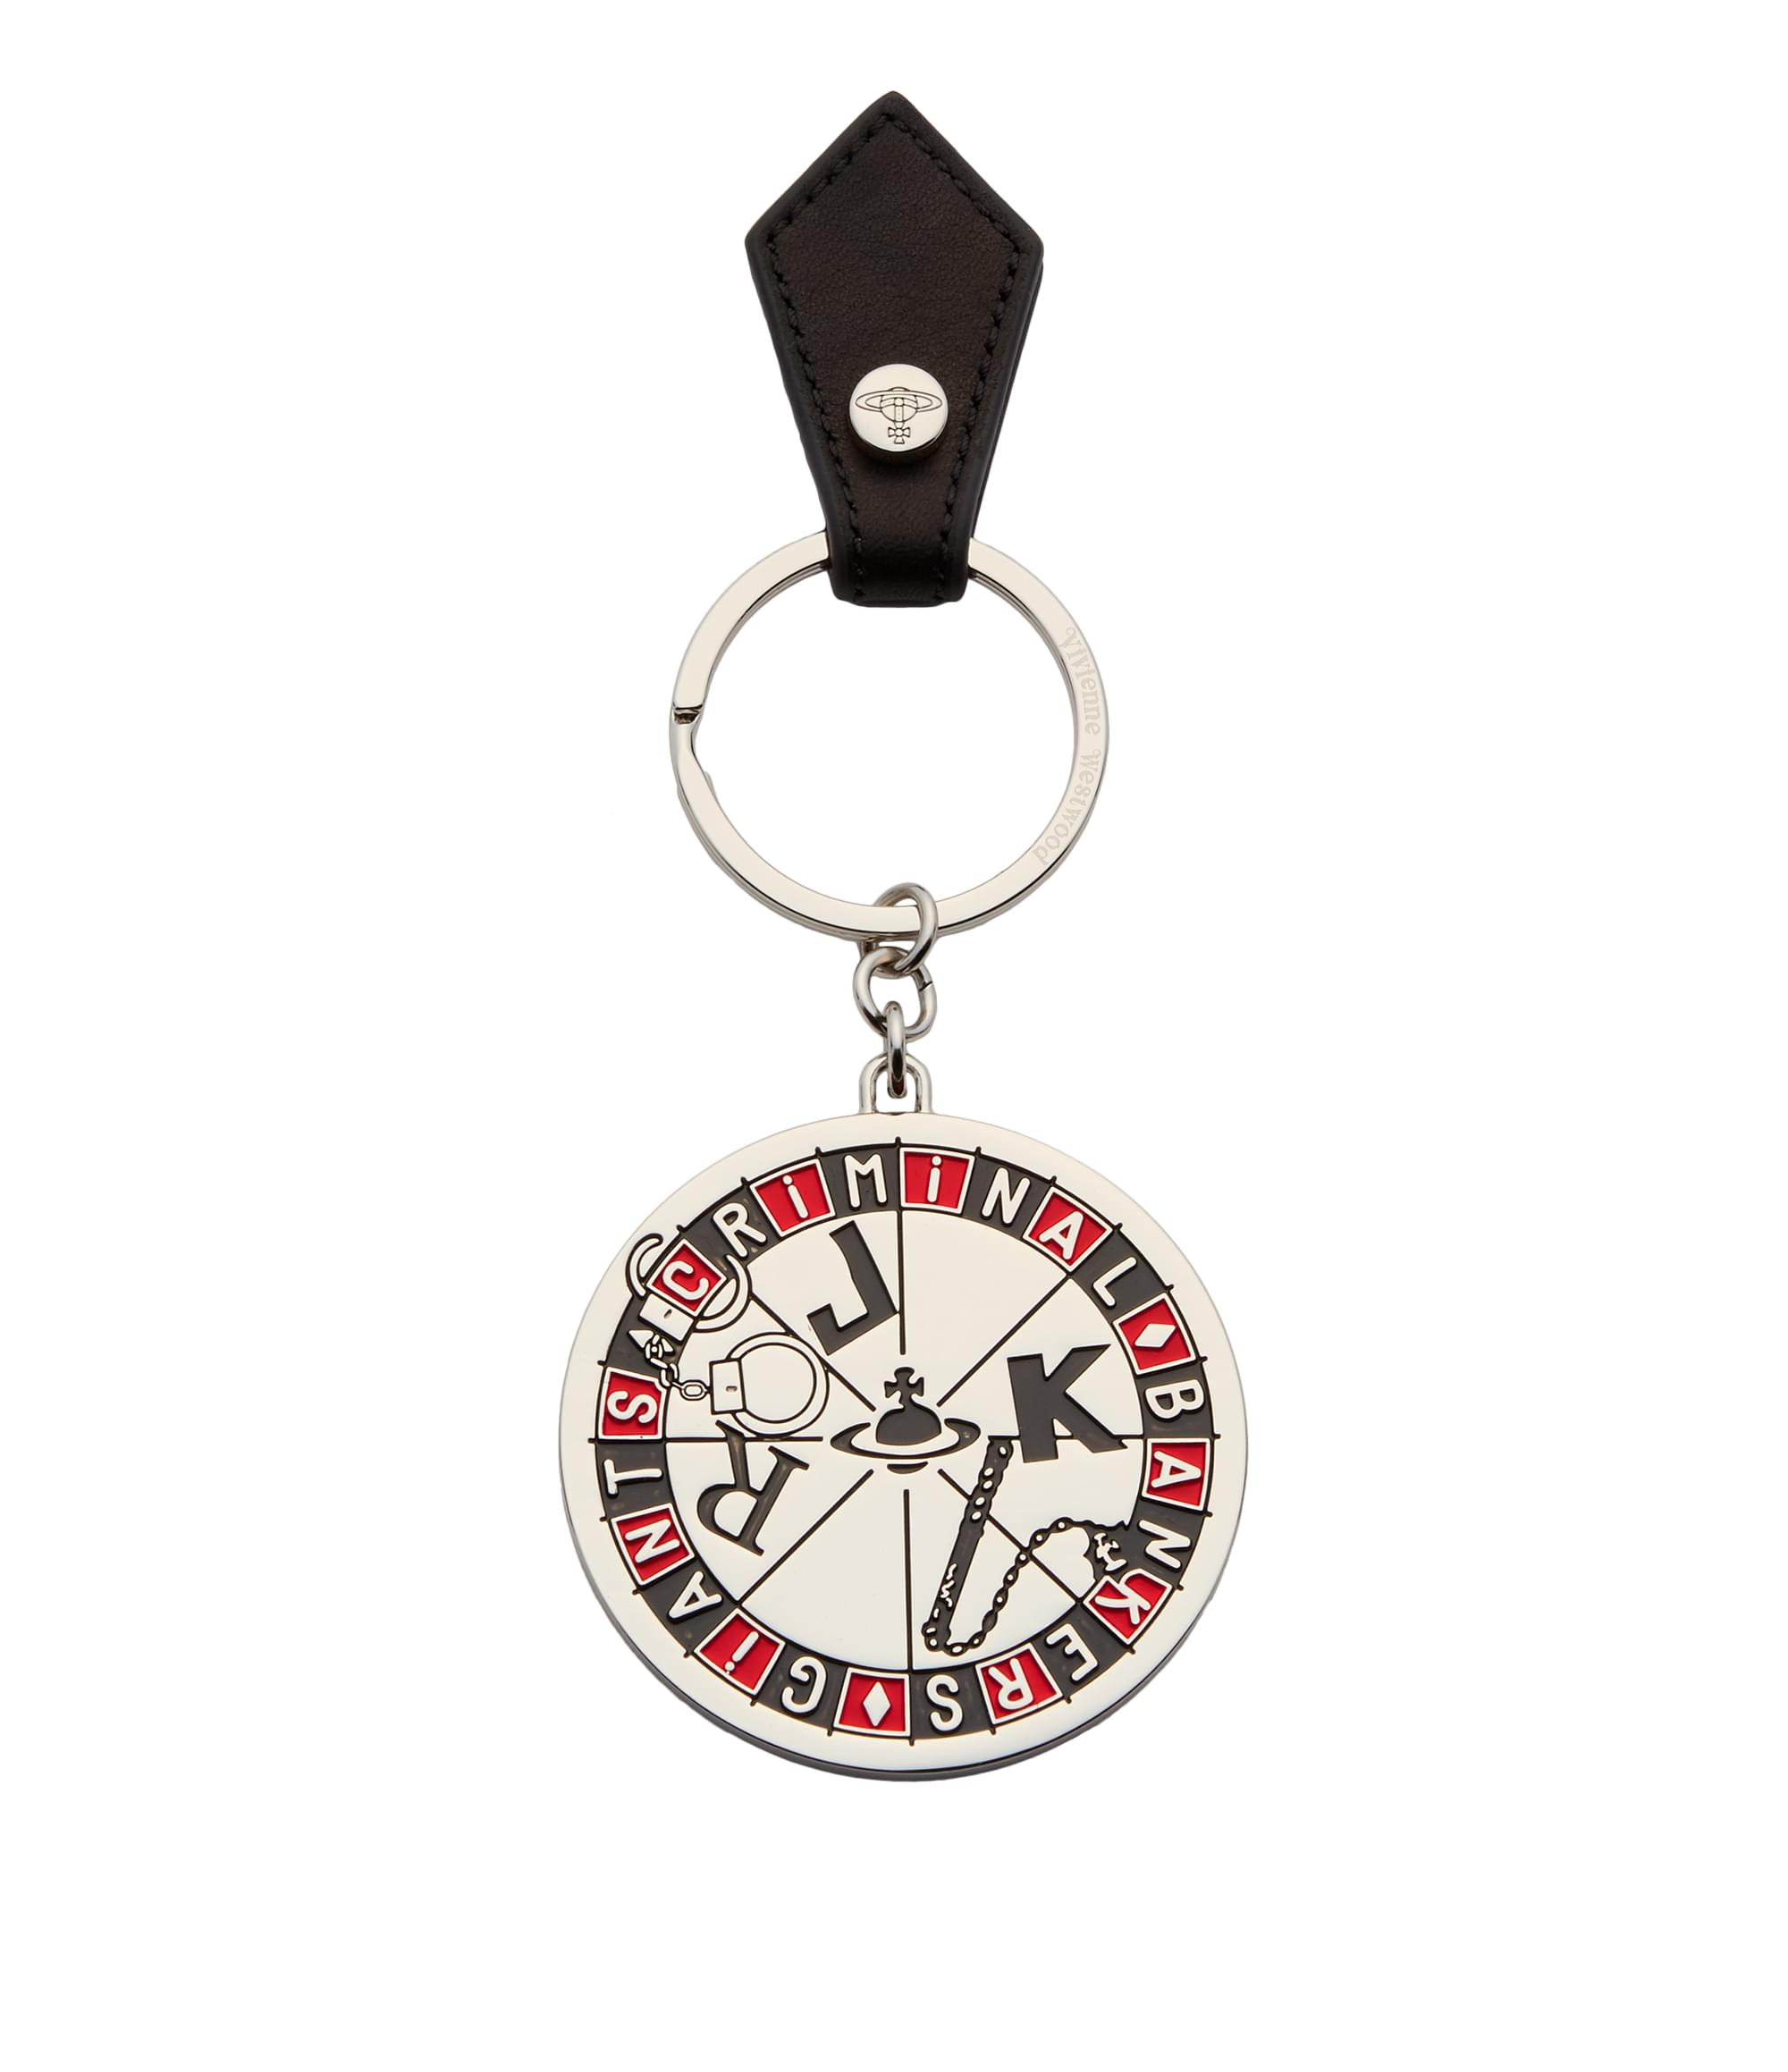 Vivienne Westwood Joker Roulette Key Ring 390076 Black